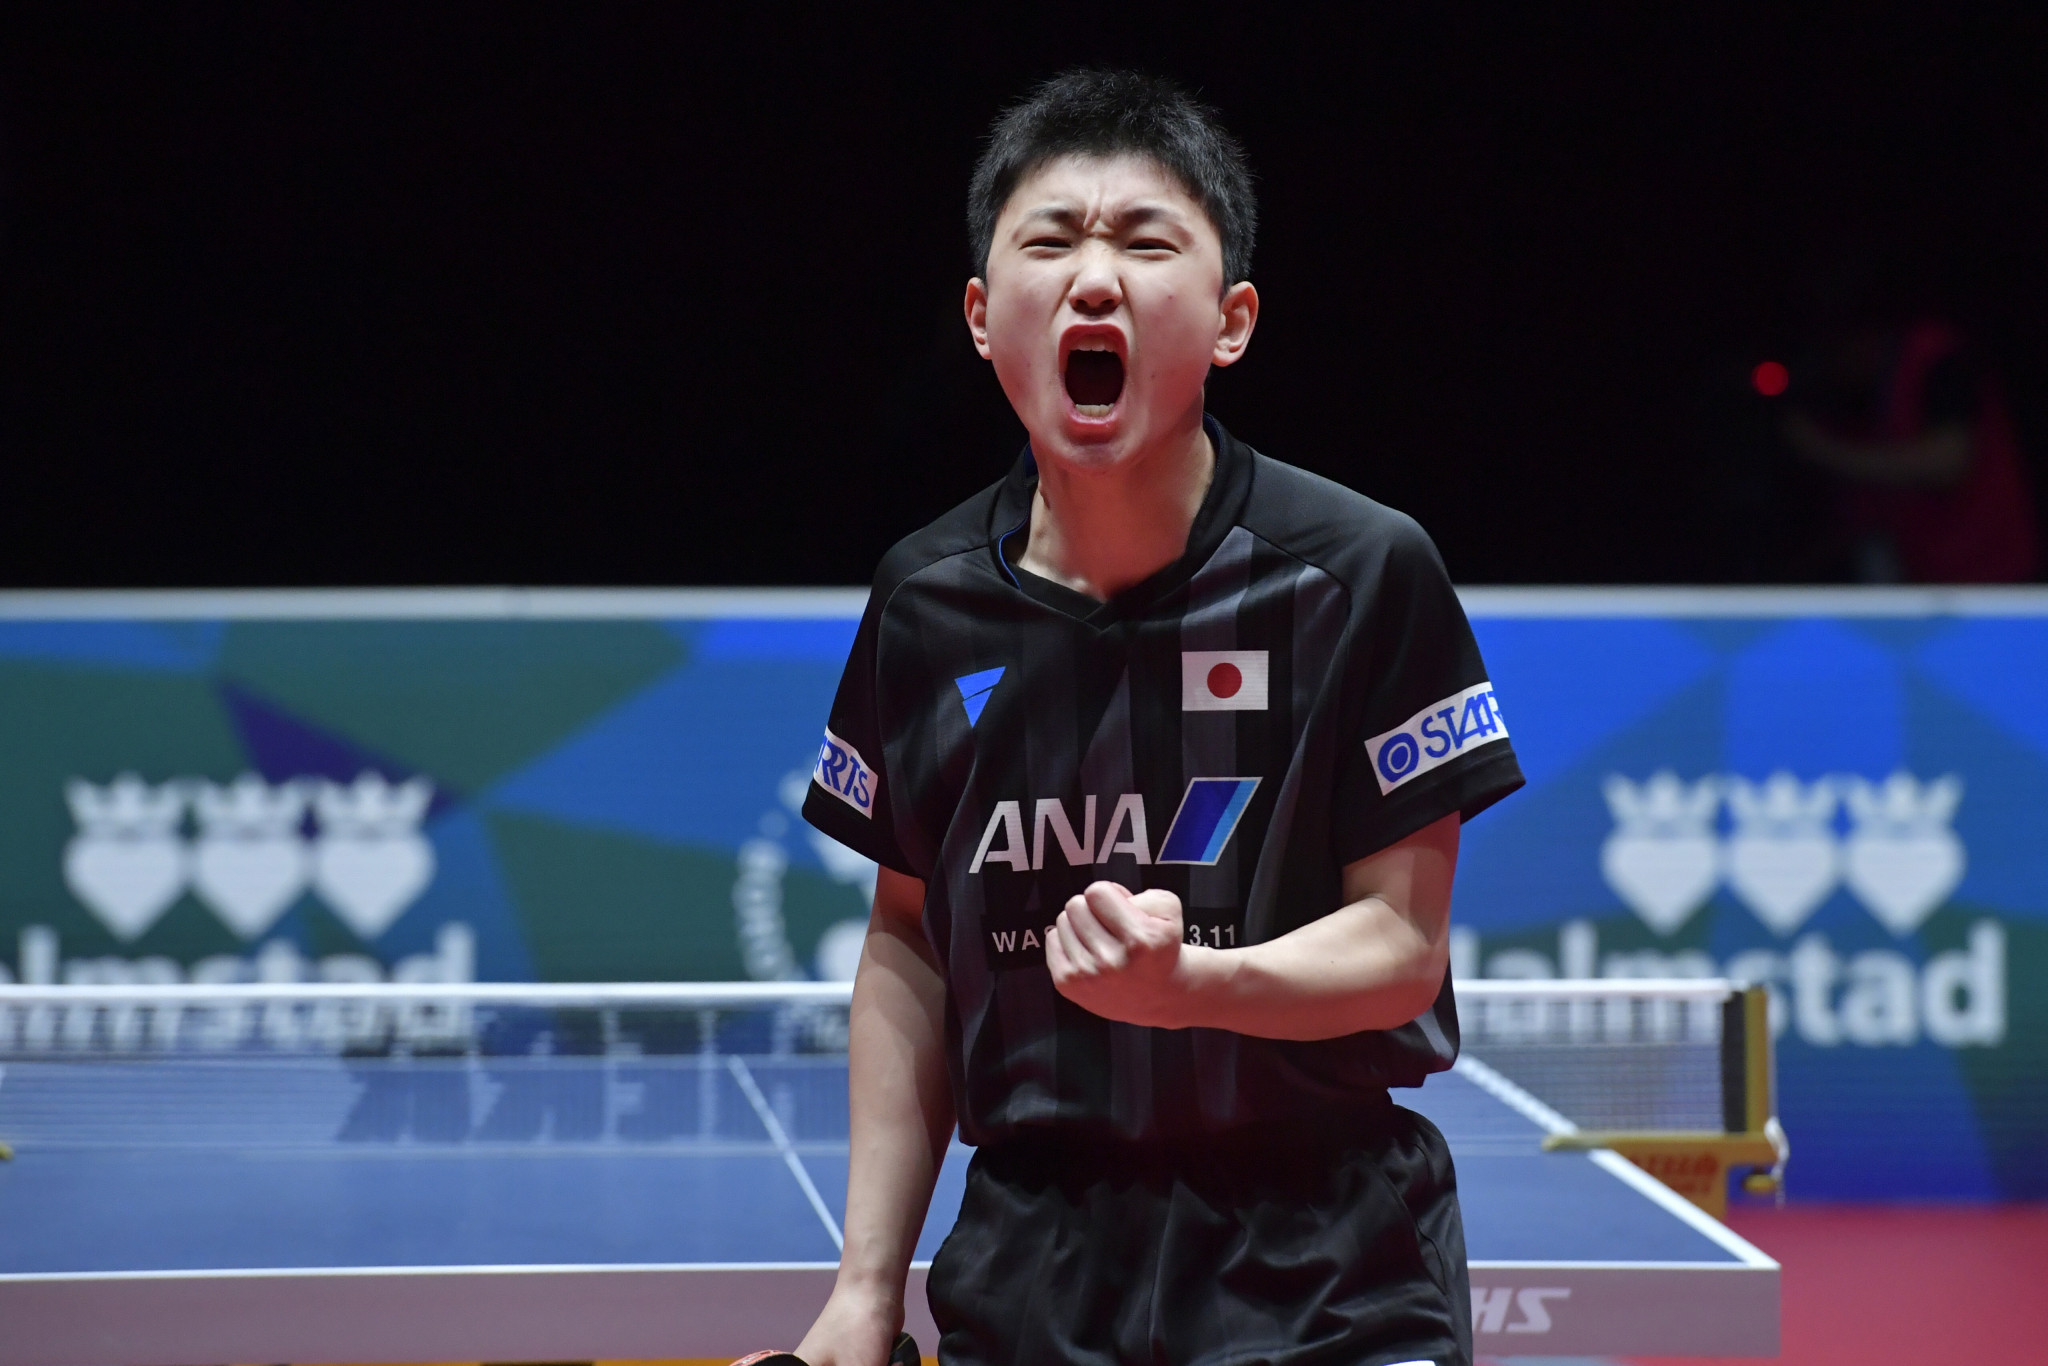 Tomokazu Harimoto will grab home fans' attention at the Japan Open ©Getty Images